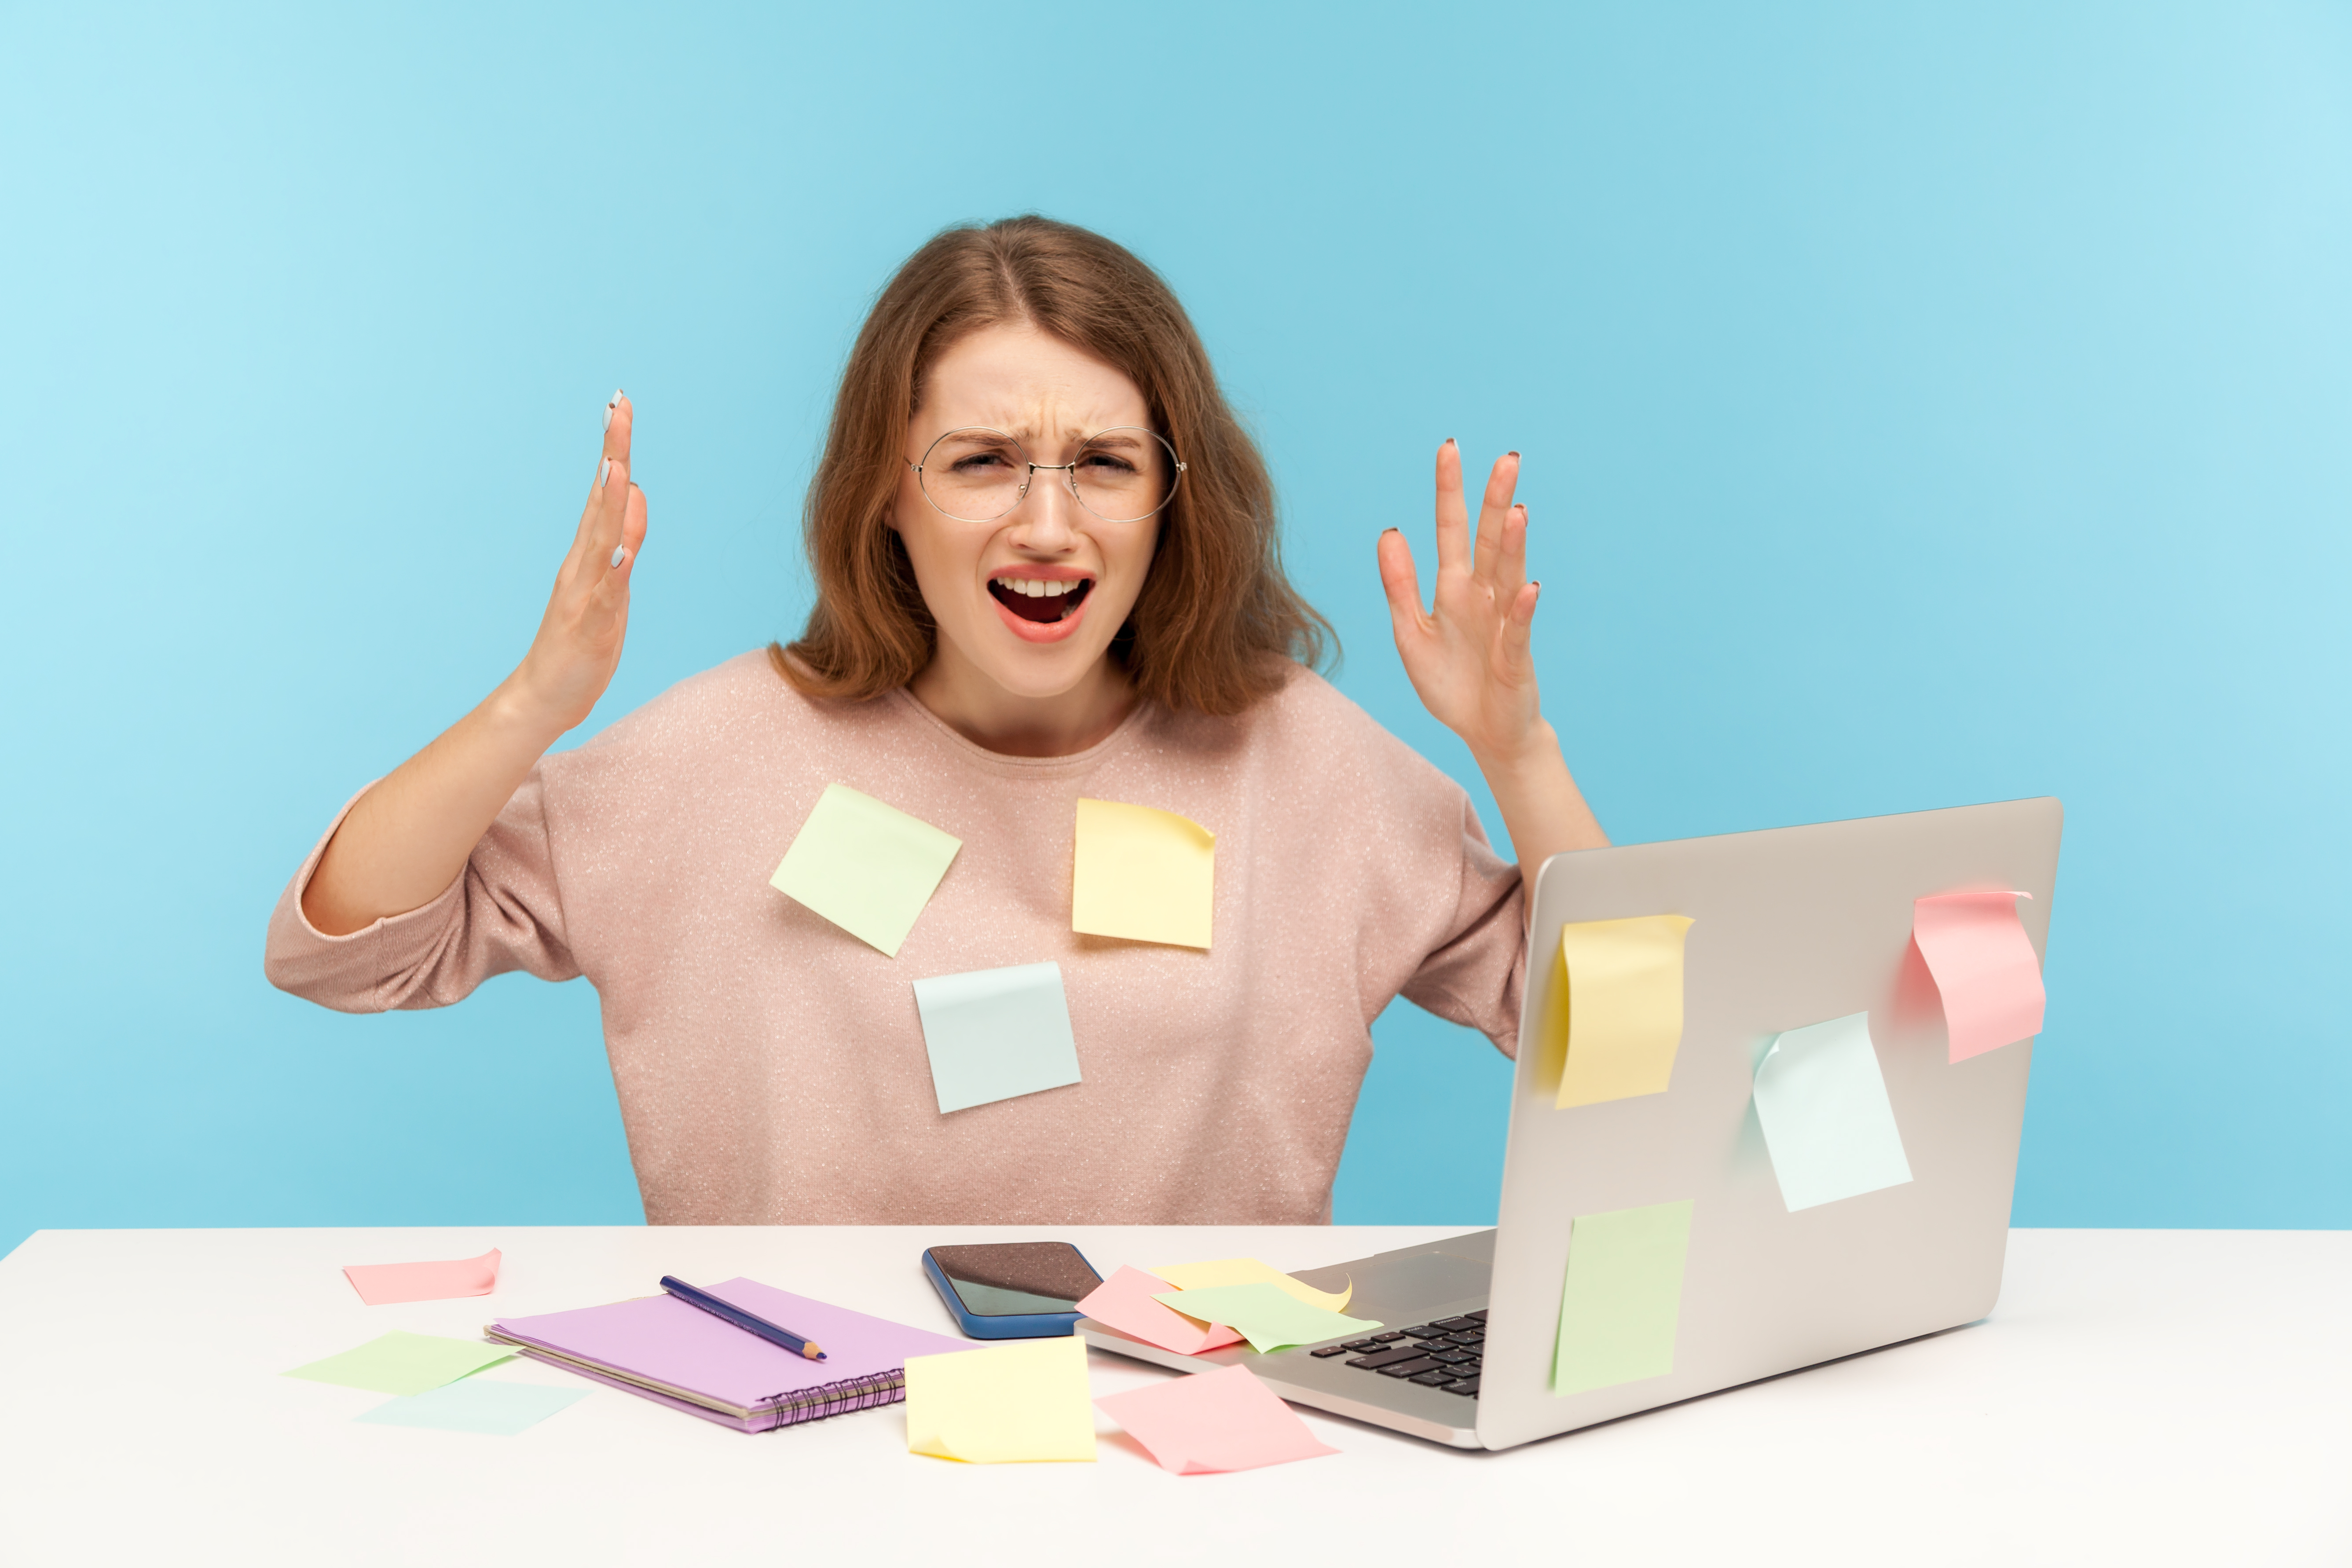 Overwhelmed women with sticky notes all over herself and work station.